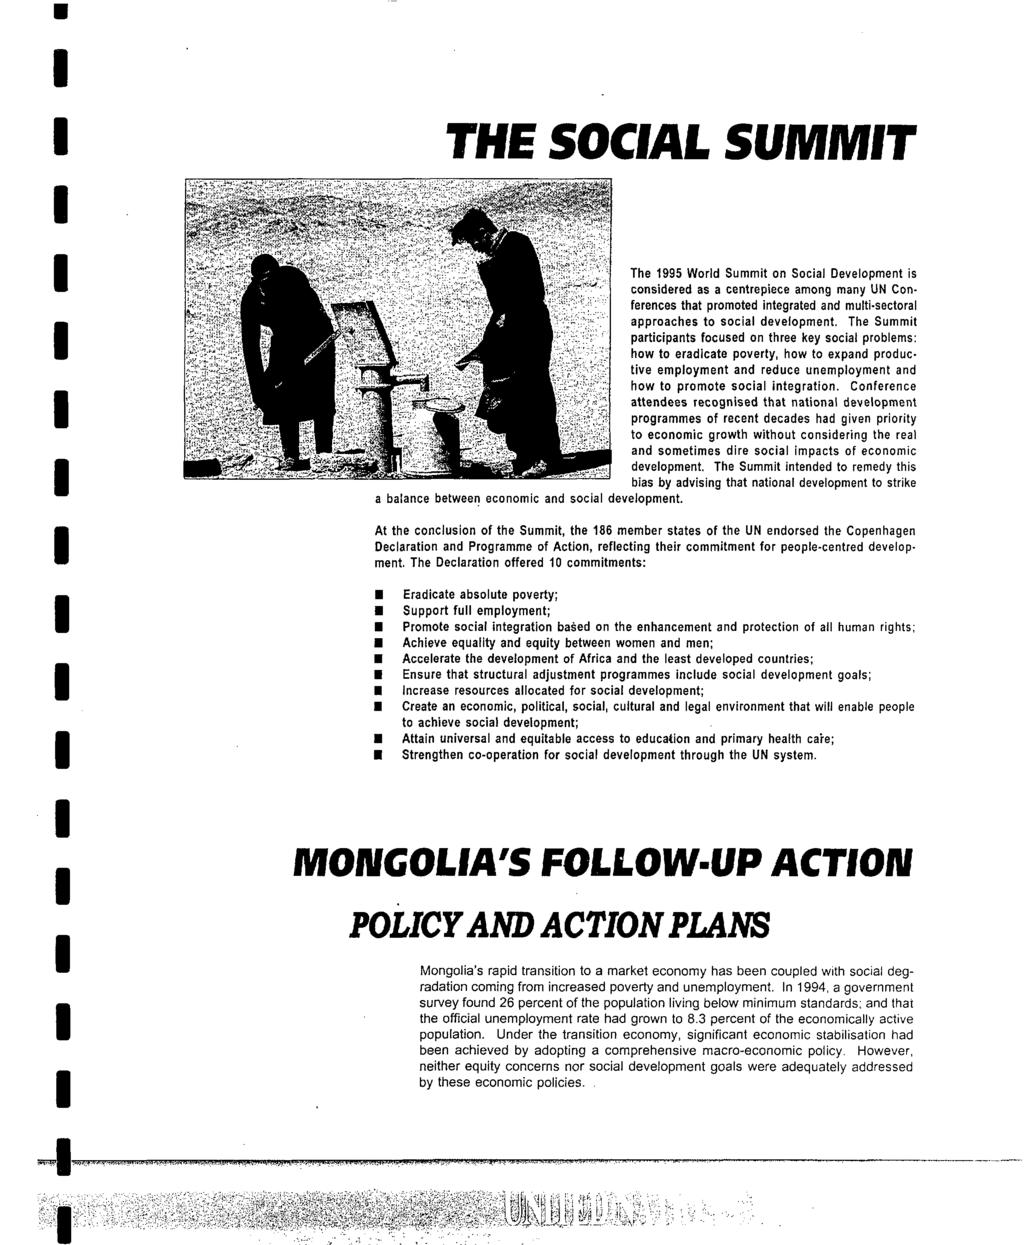 THE SOCAL SUMMT The 1995 World Summit on Social Development is considered as a centrepiece among many UN Conferences that promoted integrated and multi-sectoral approaches to social development.